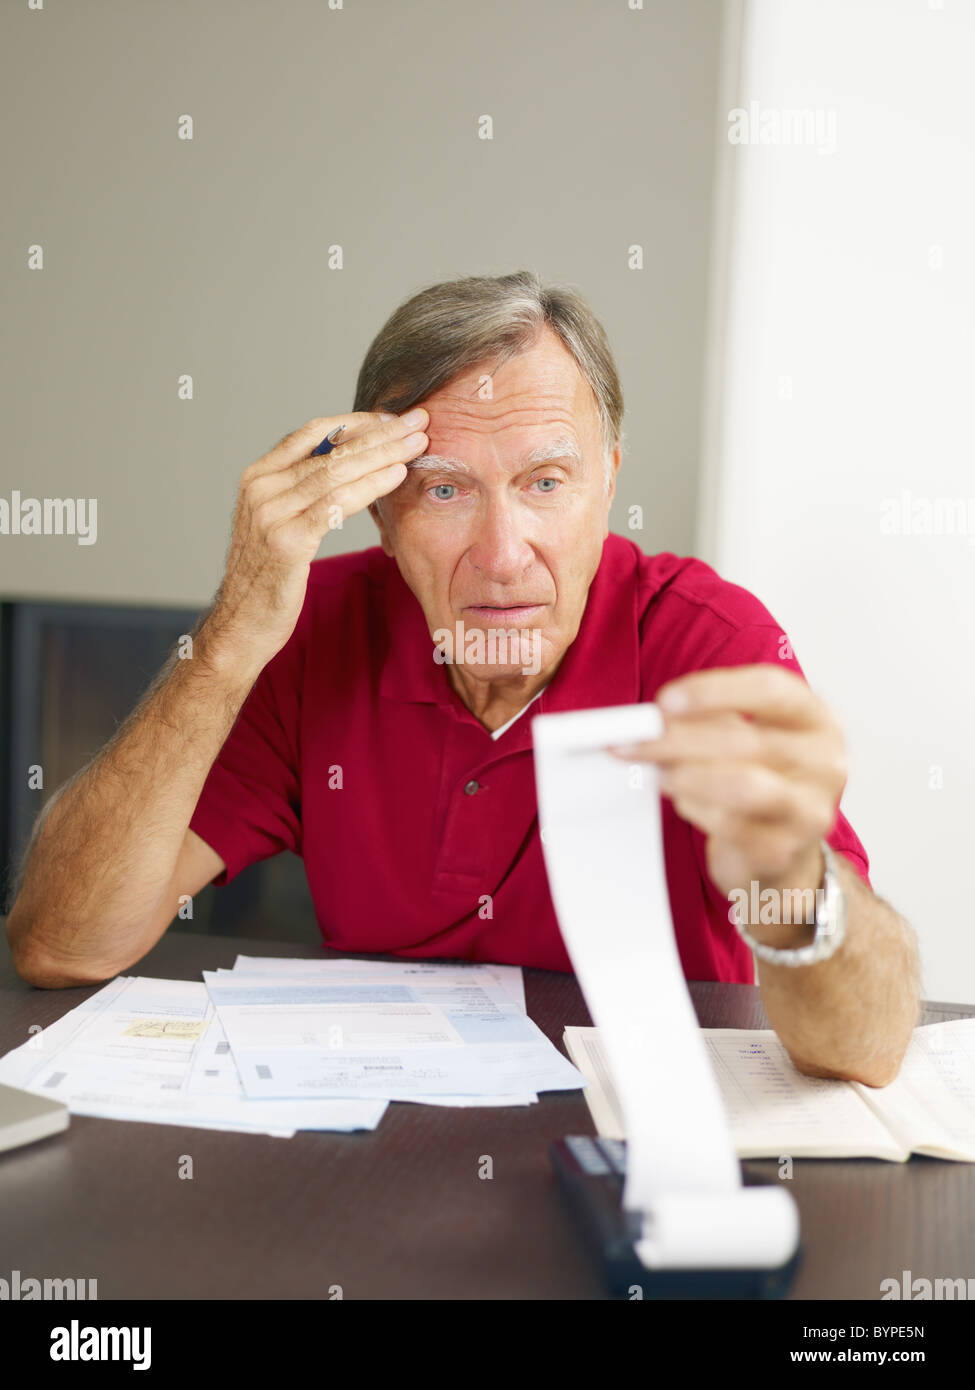 Senior man worried about his home finances. - Stock Image